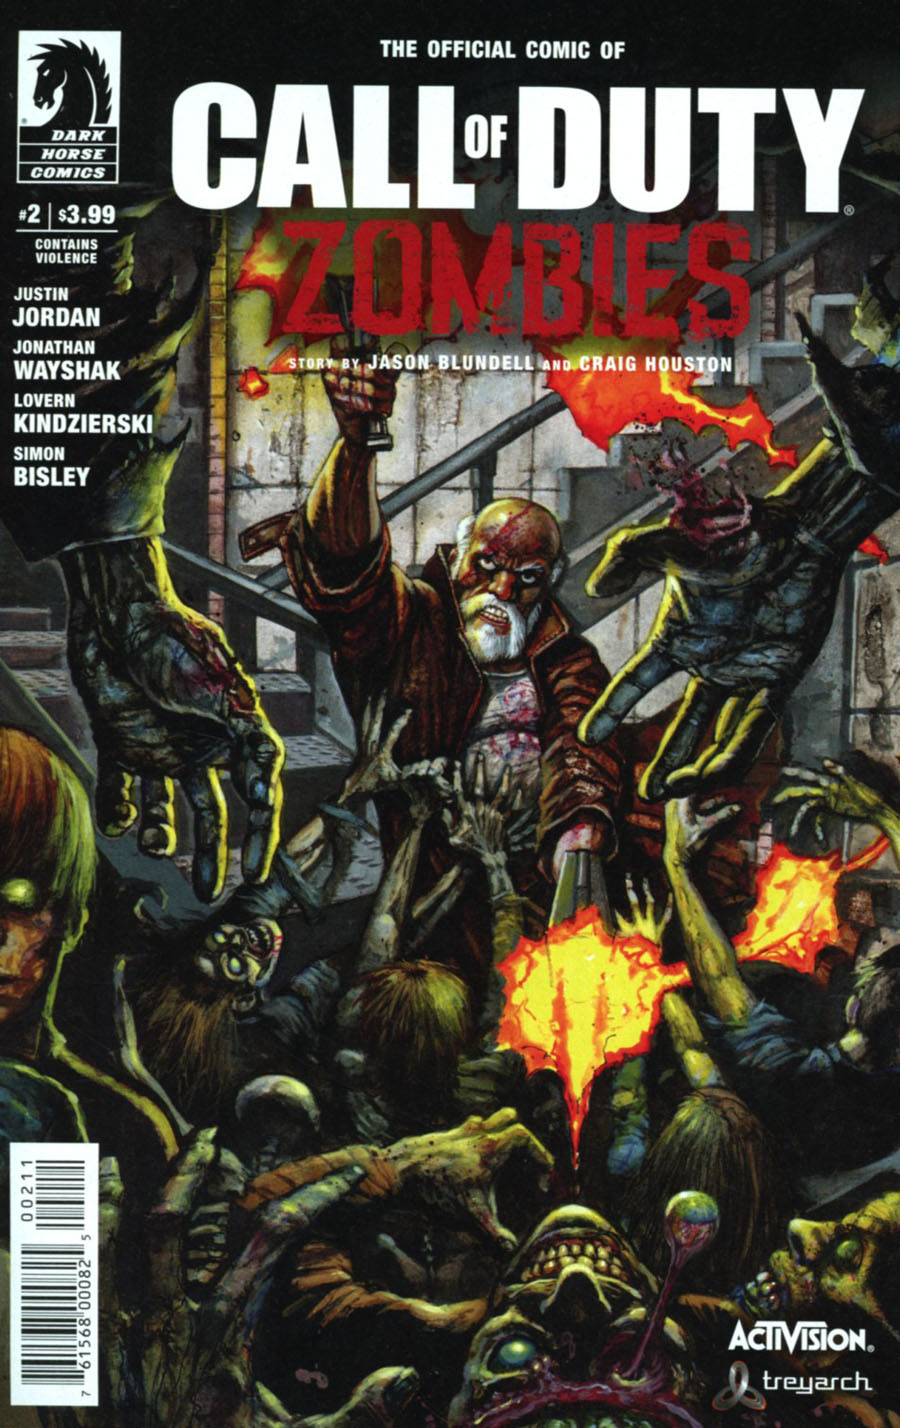 Call Of Duty Zombies #2